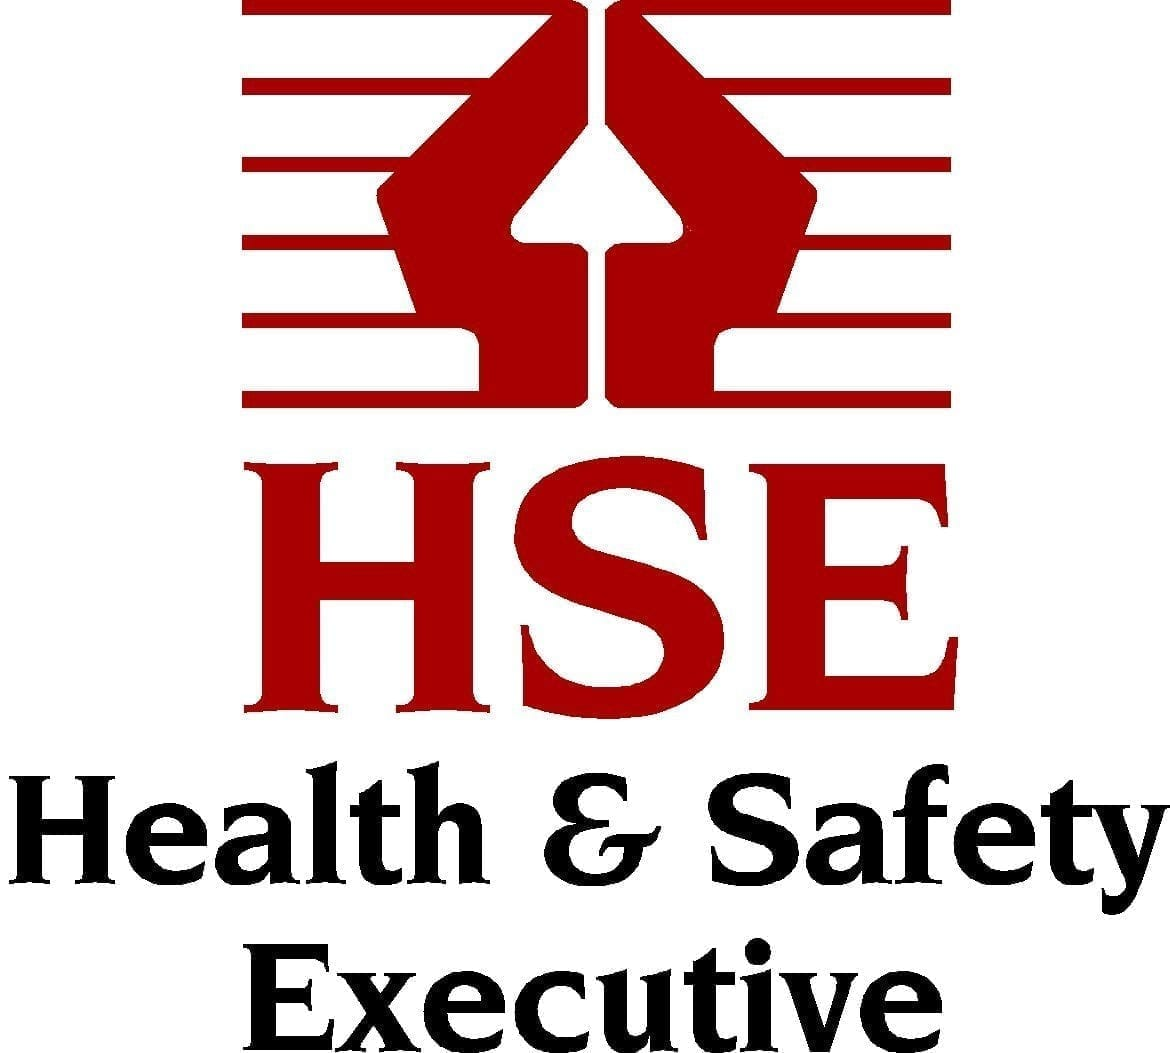 HSE health and safety logo